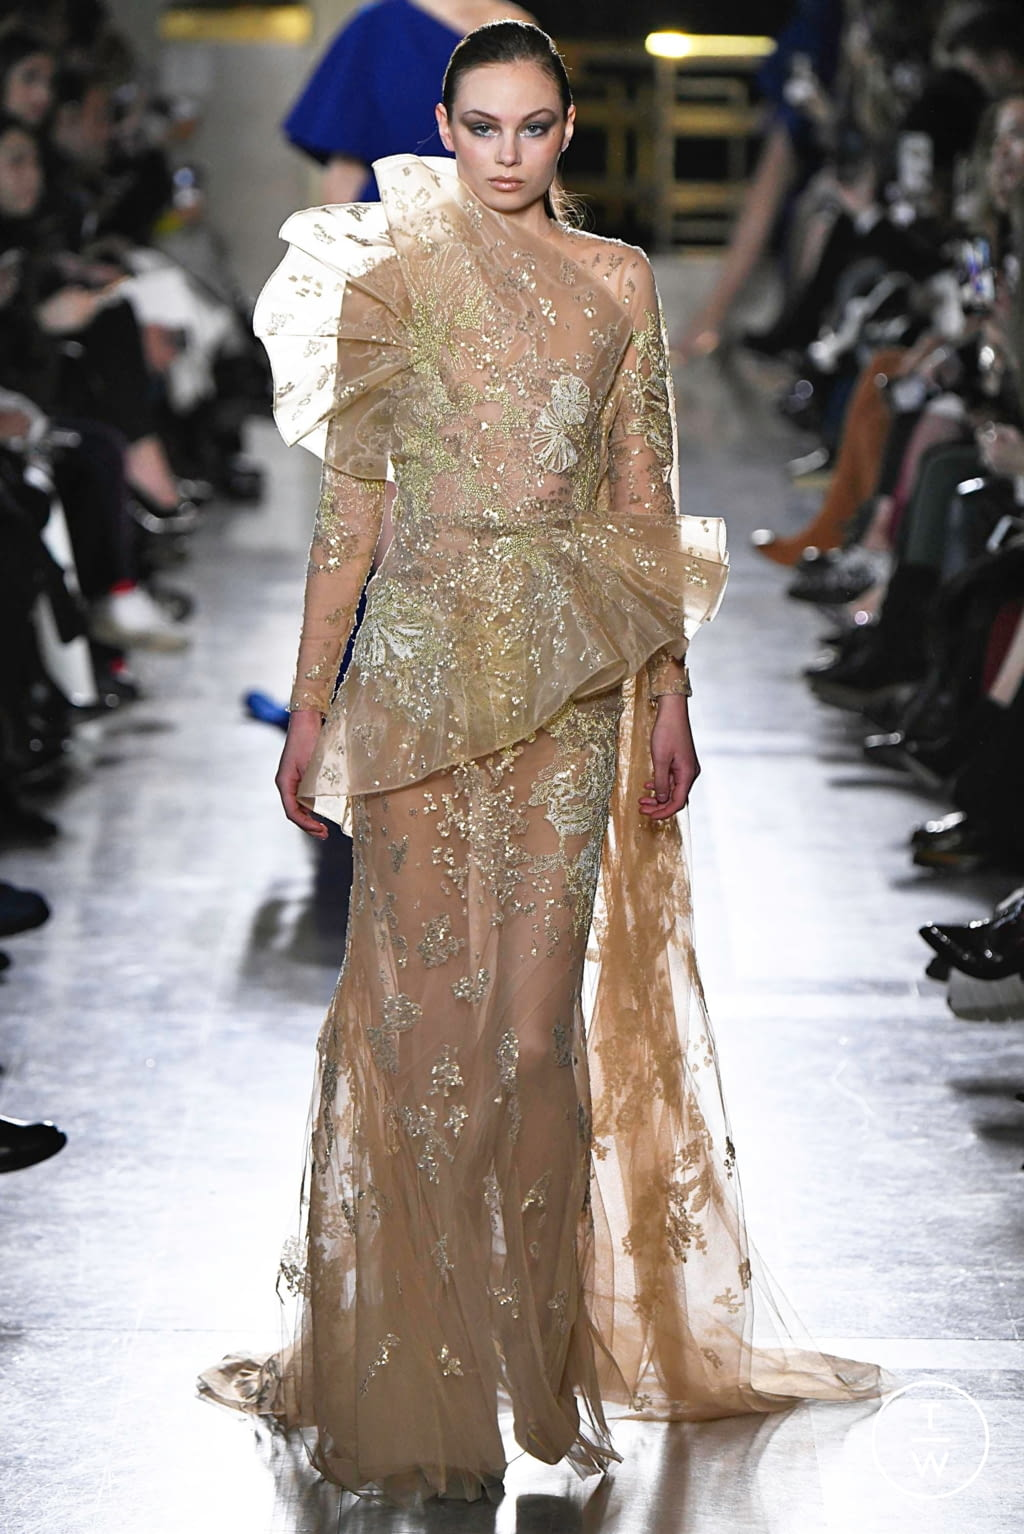 Fashion Week Paris Spring/Summer 2019 look 46 from the Elie Saab collection 高级定制